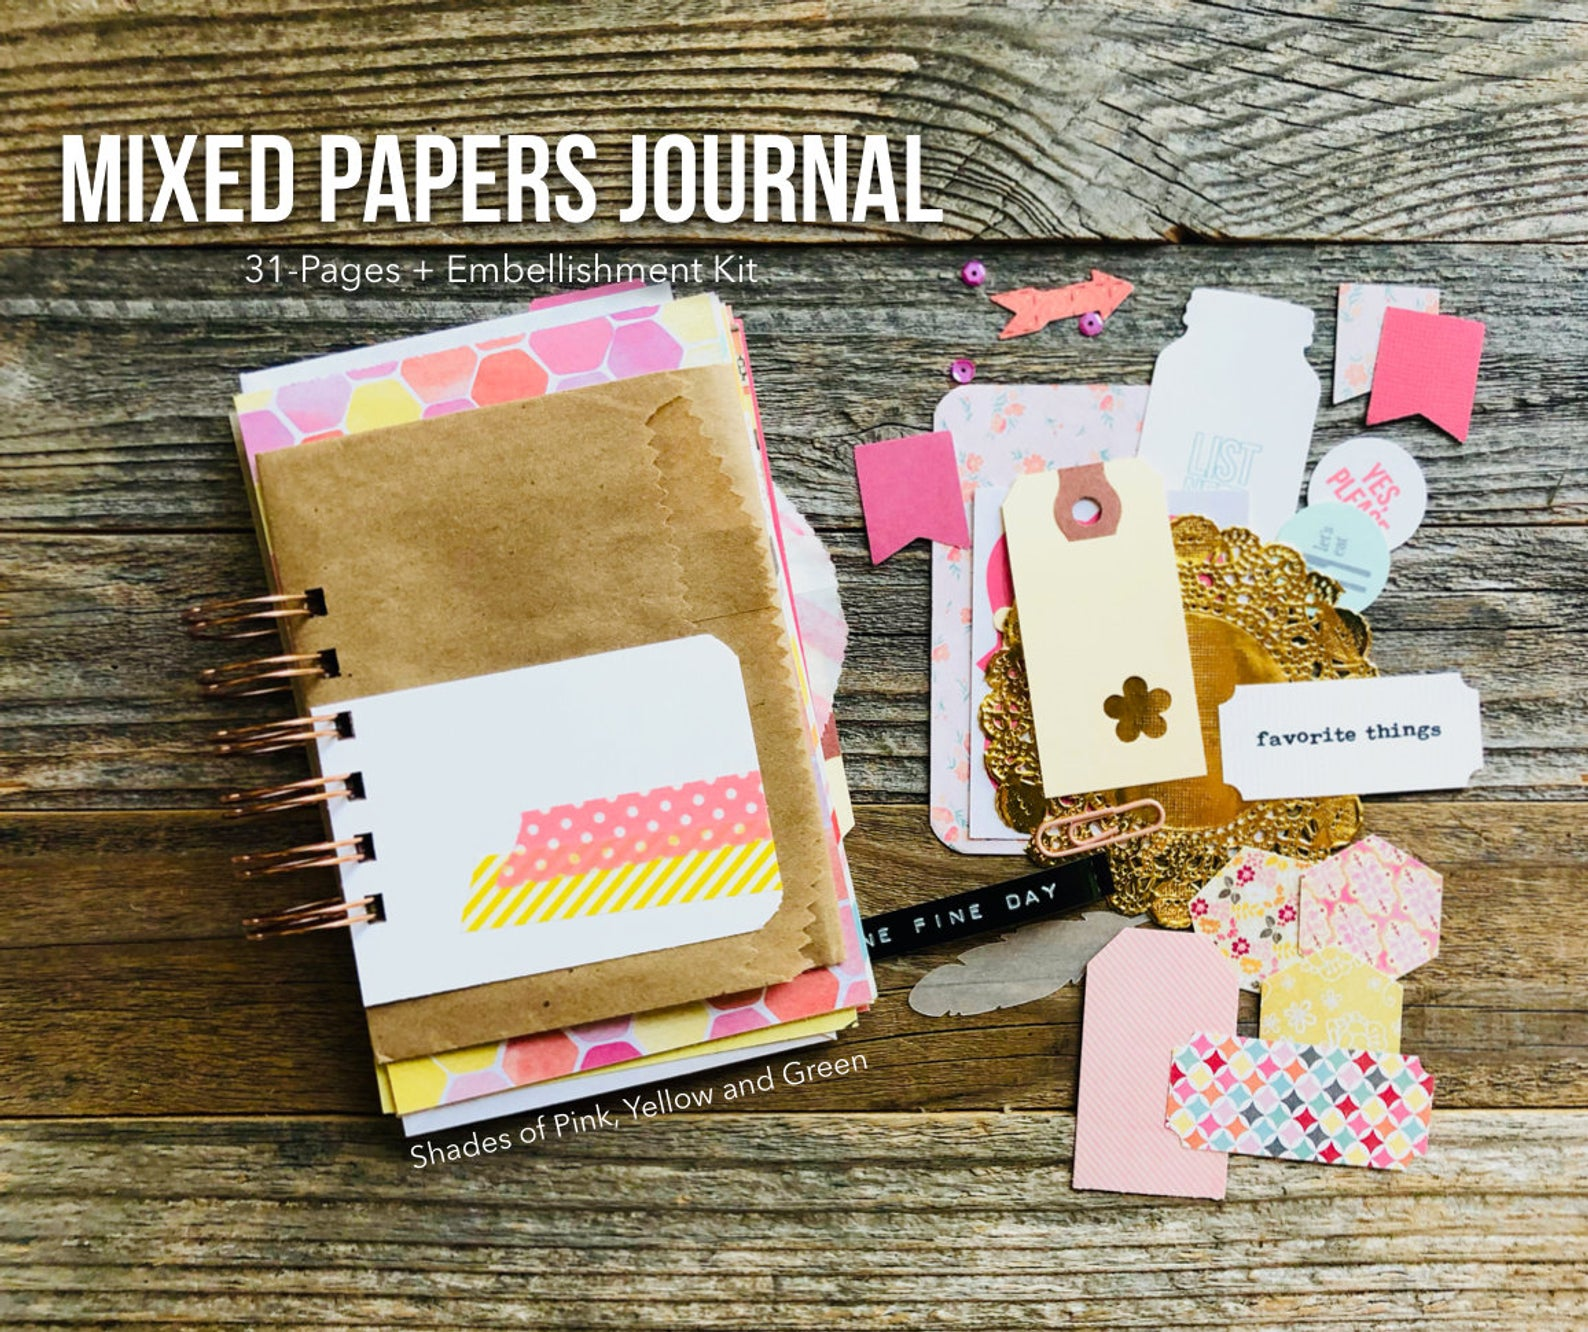 #30lists, 30  Days of Lists, registration, junk journal, mini book, list journal, lists, mixed media journal